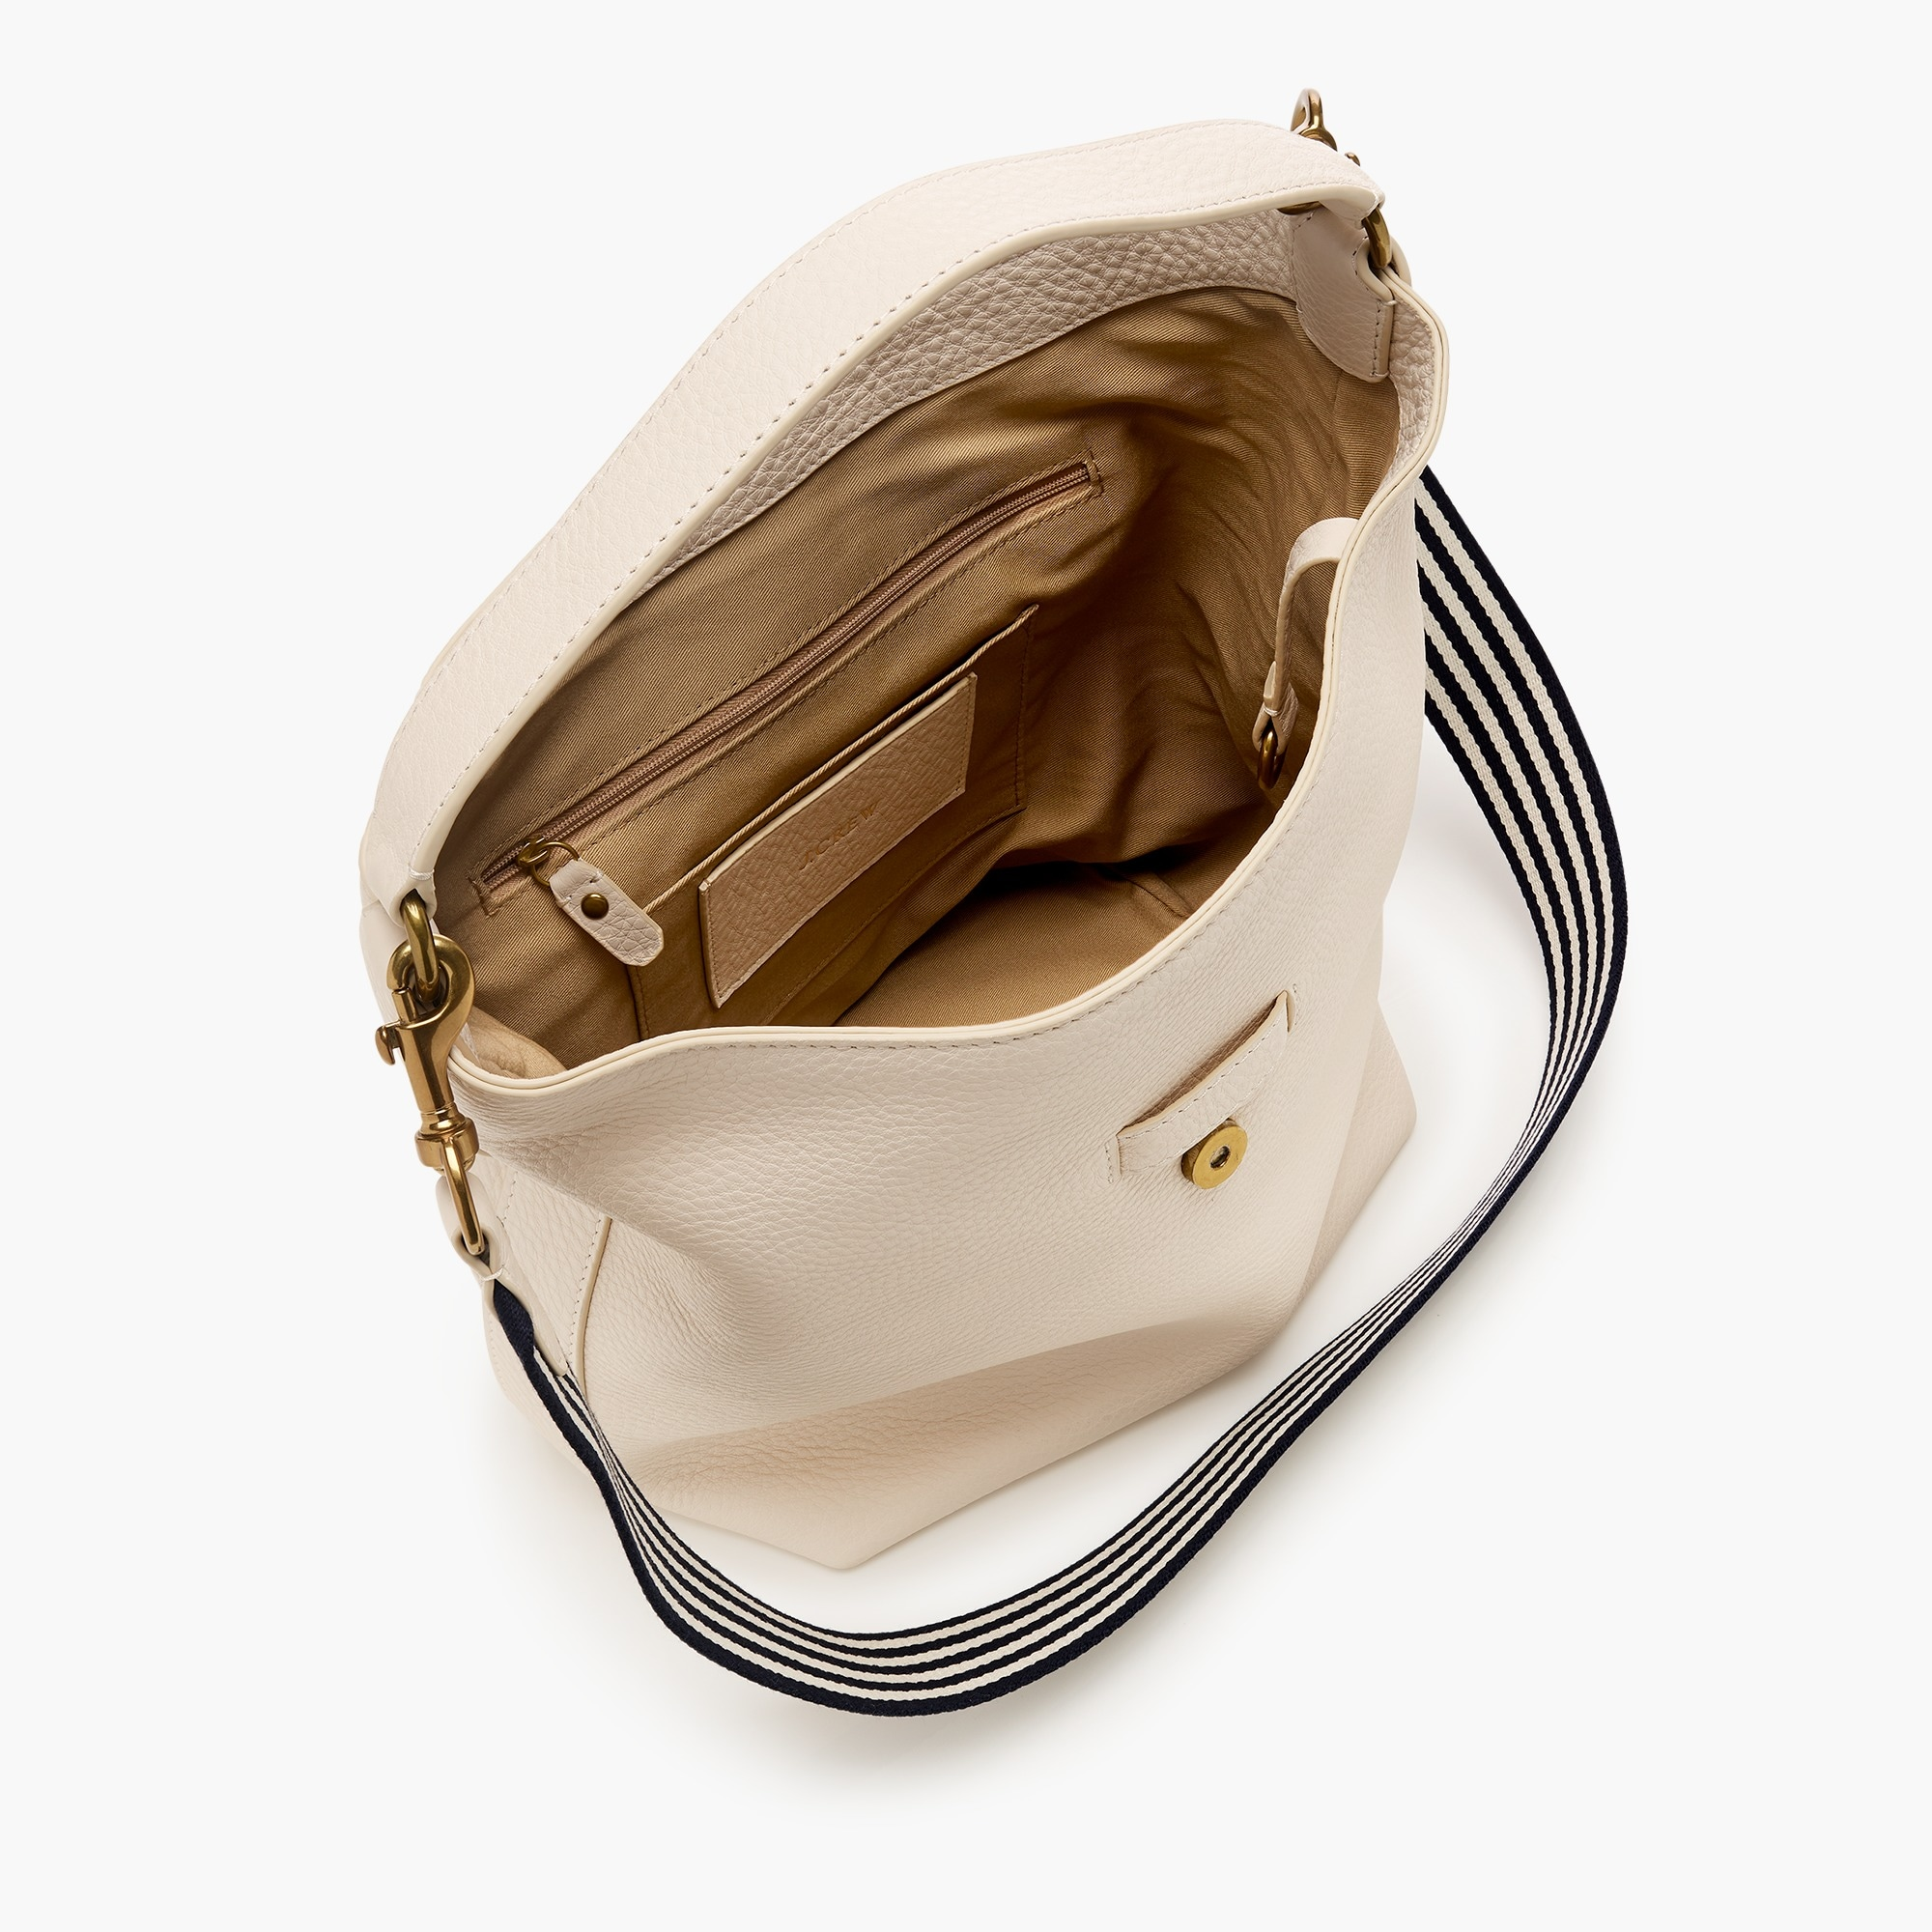 Image 3 for Signet hobo bag in Italian leather